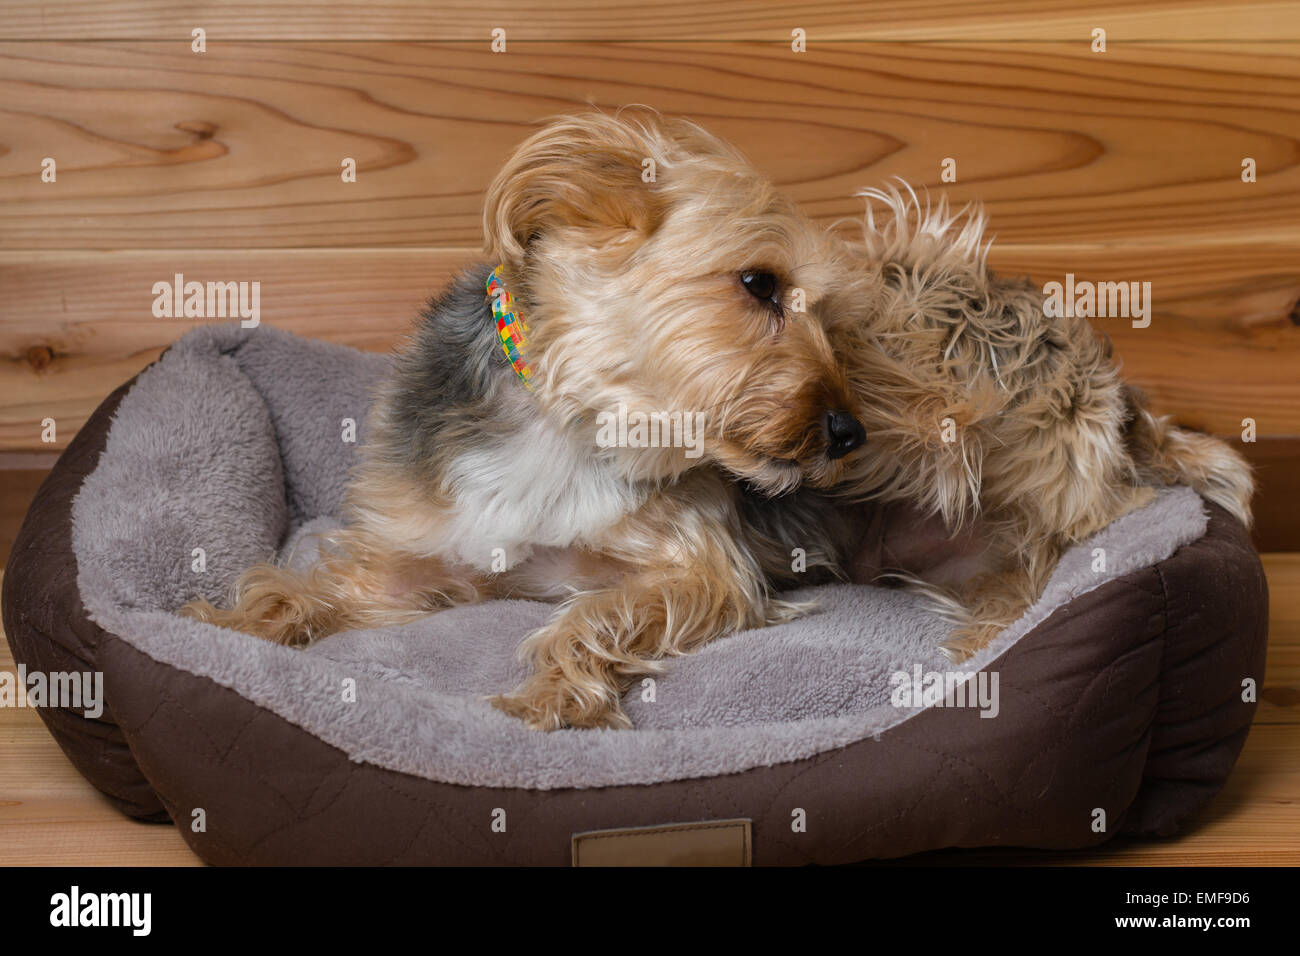 A cute Yorkshire terrier relaxing in his bed. - Stock Image